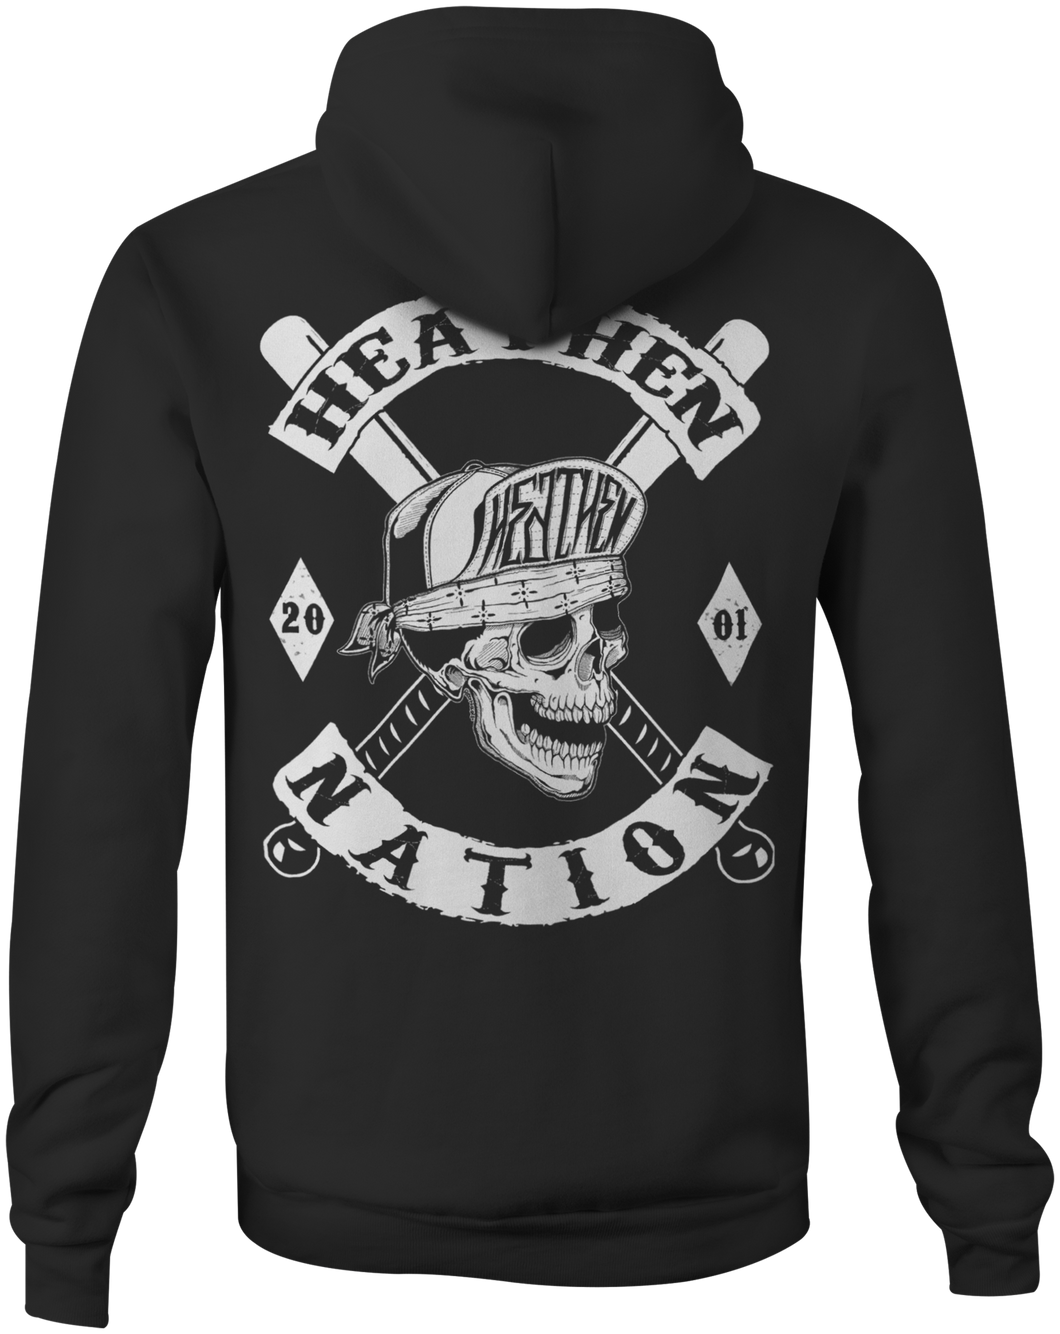 Men's Heathen Nation Zip Up Hoody